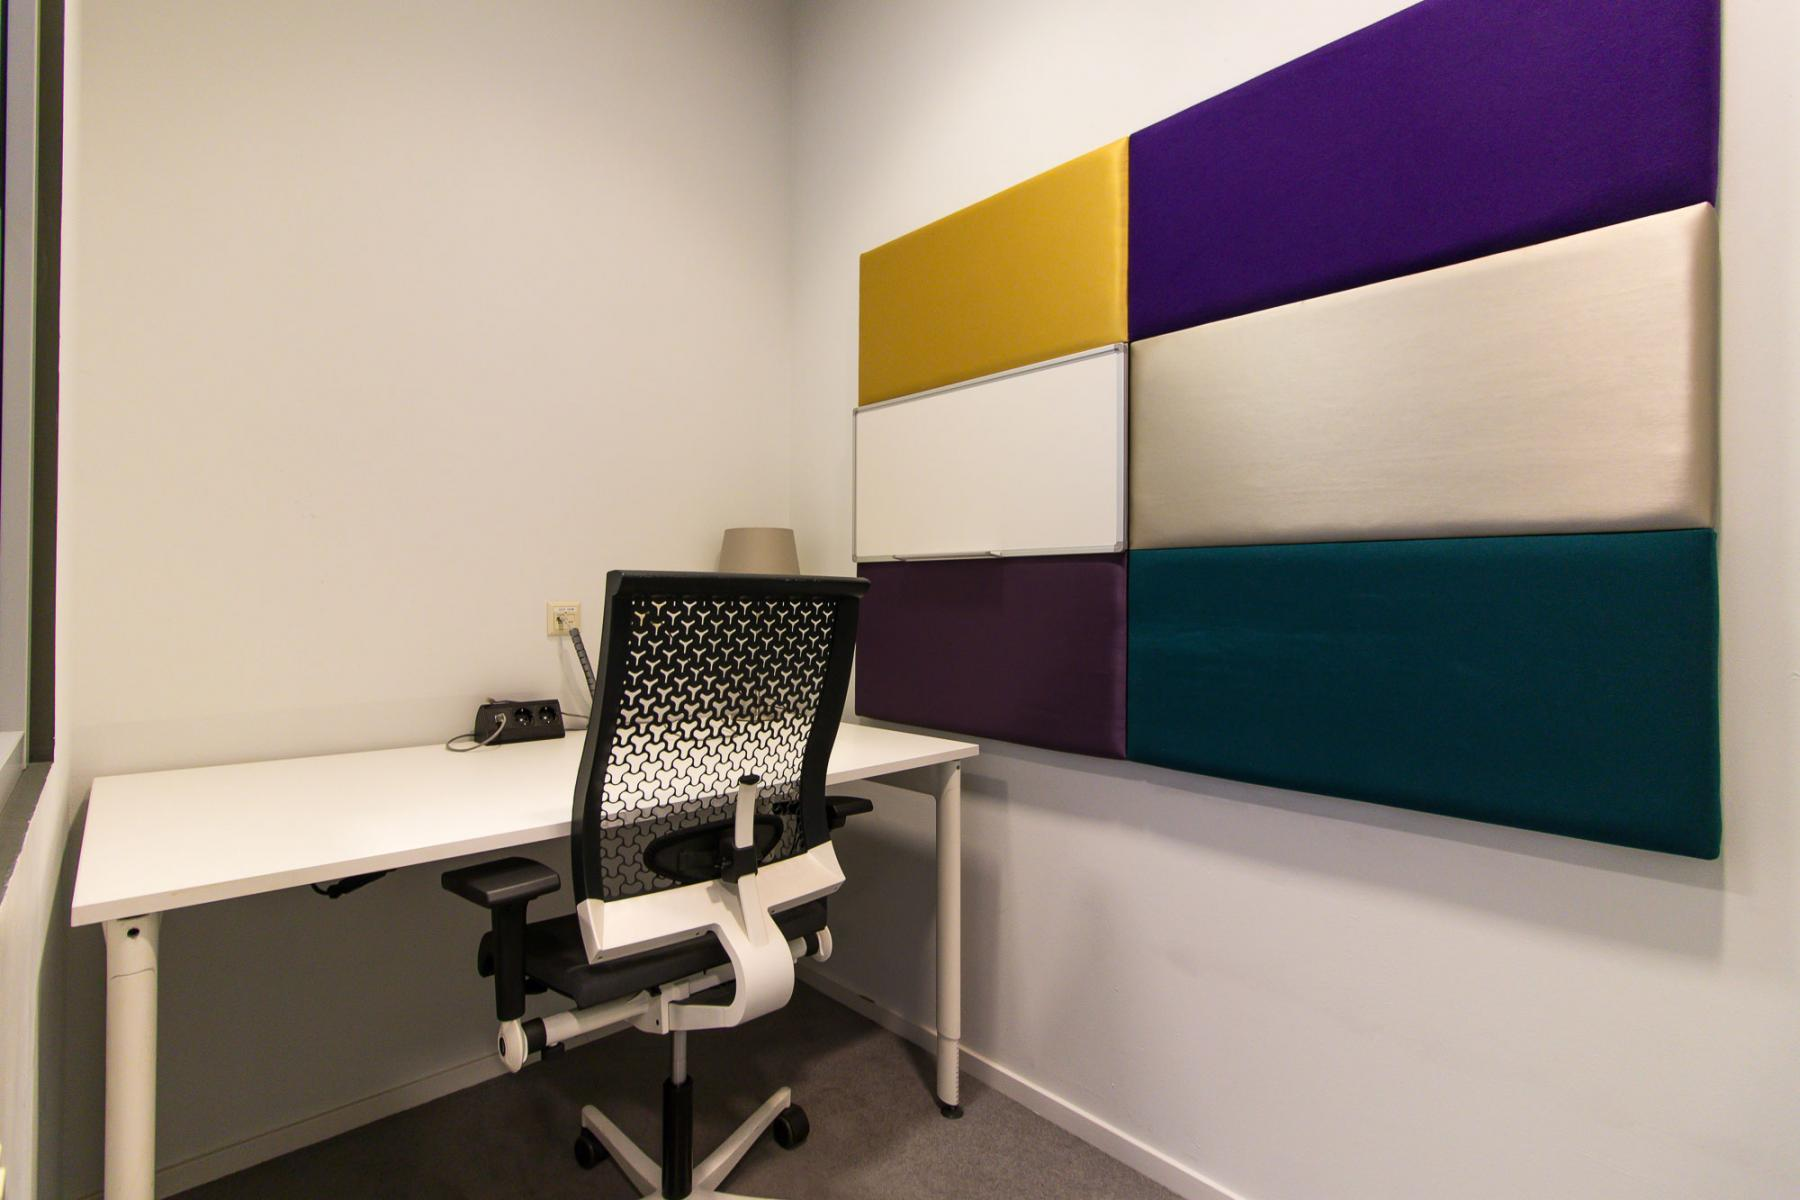 Small rooms available to work in outside your office